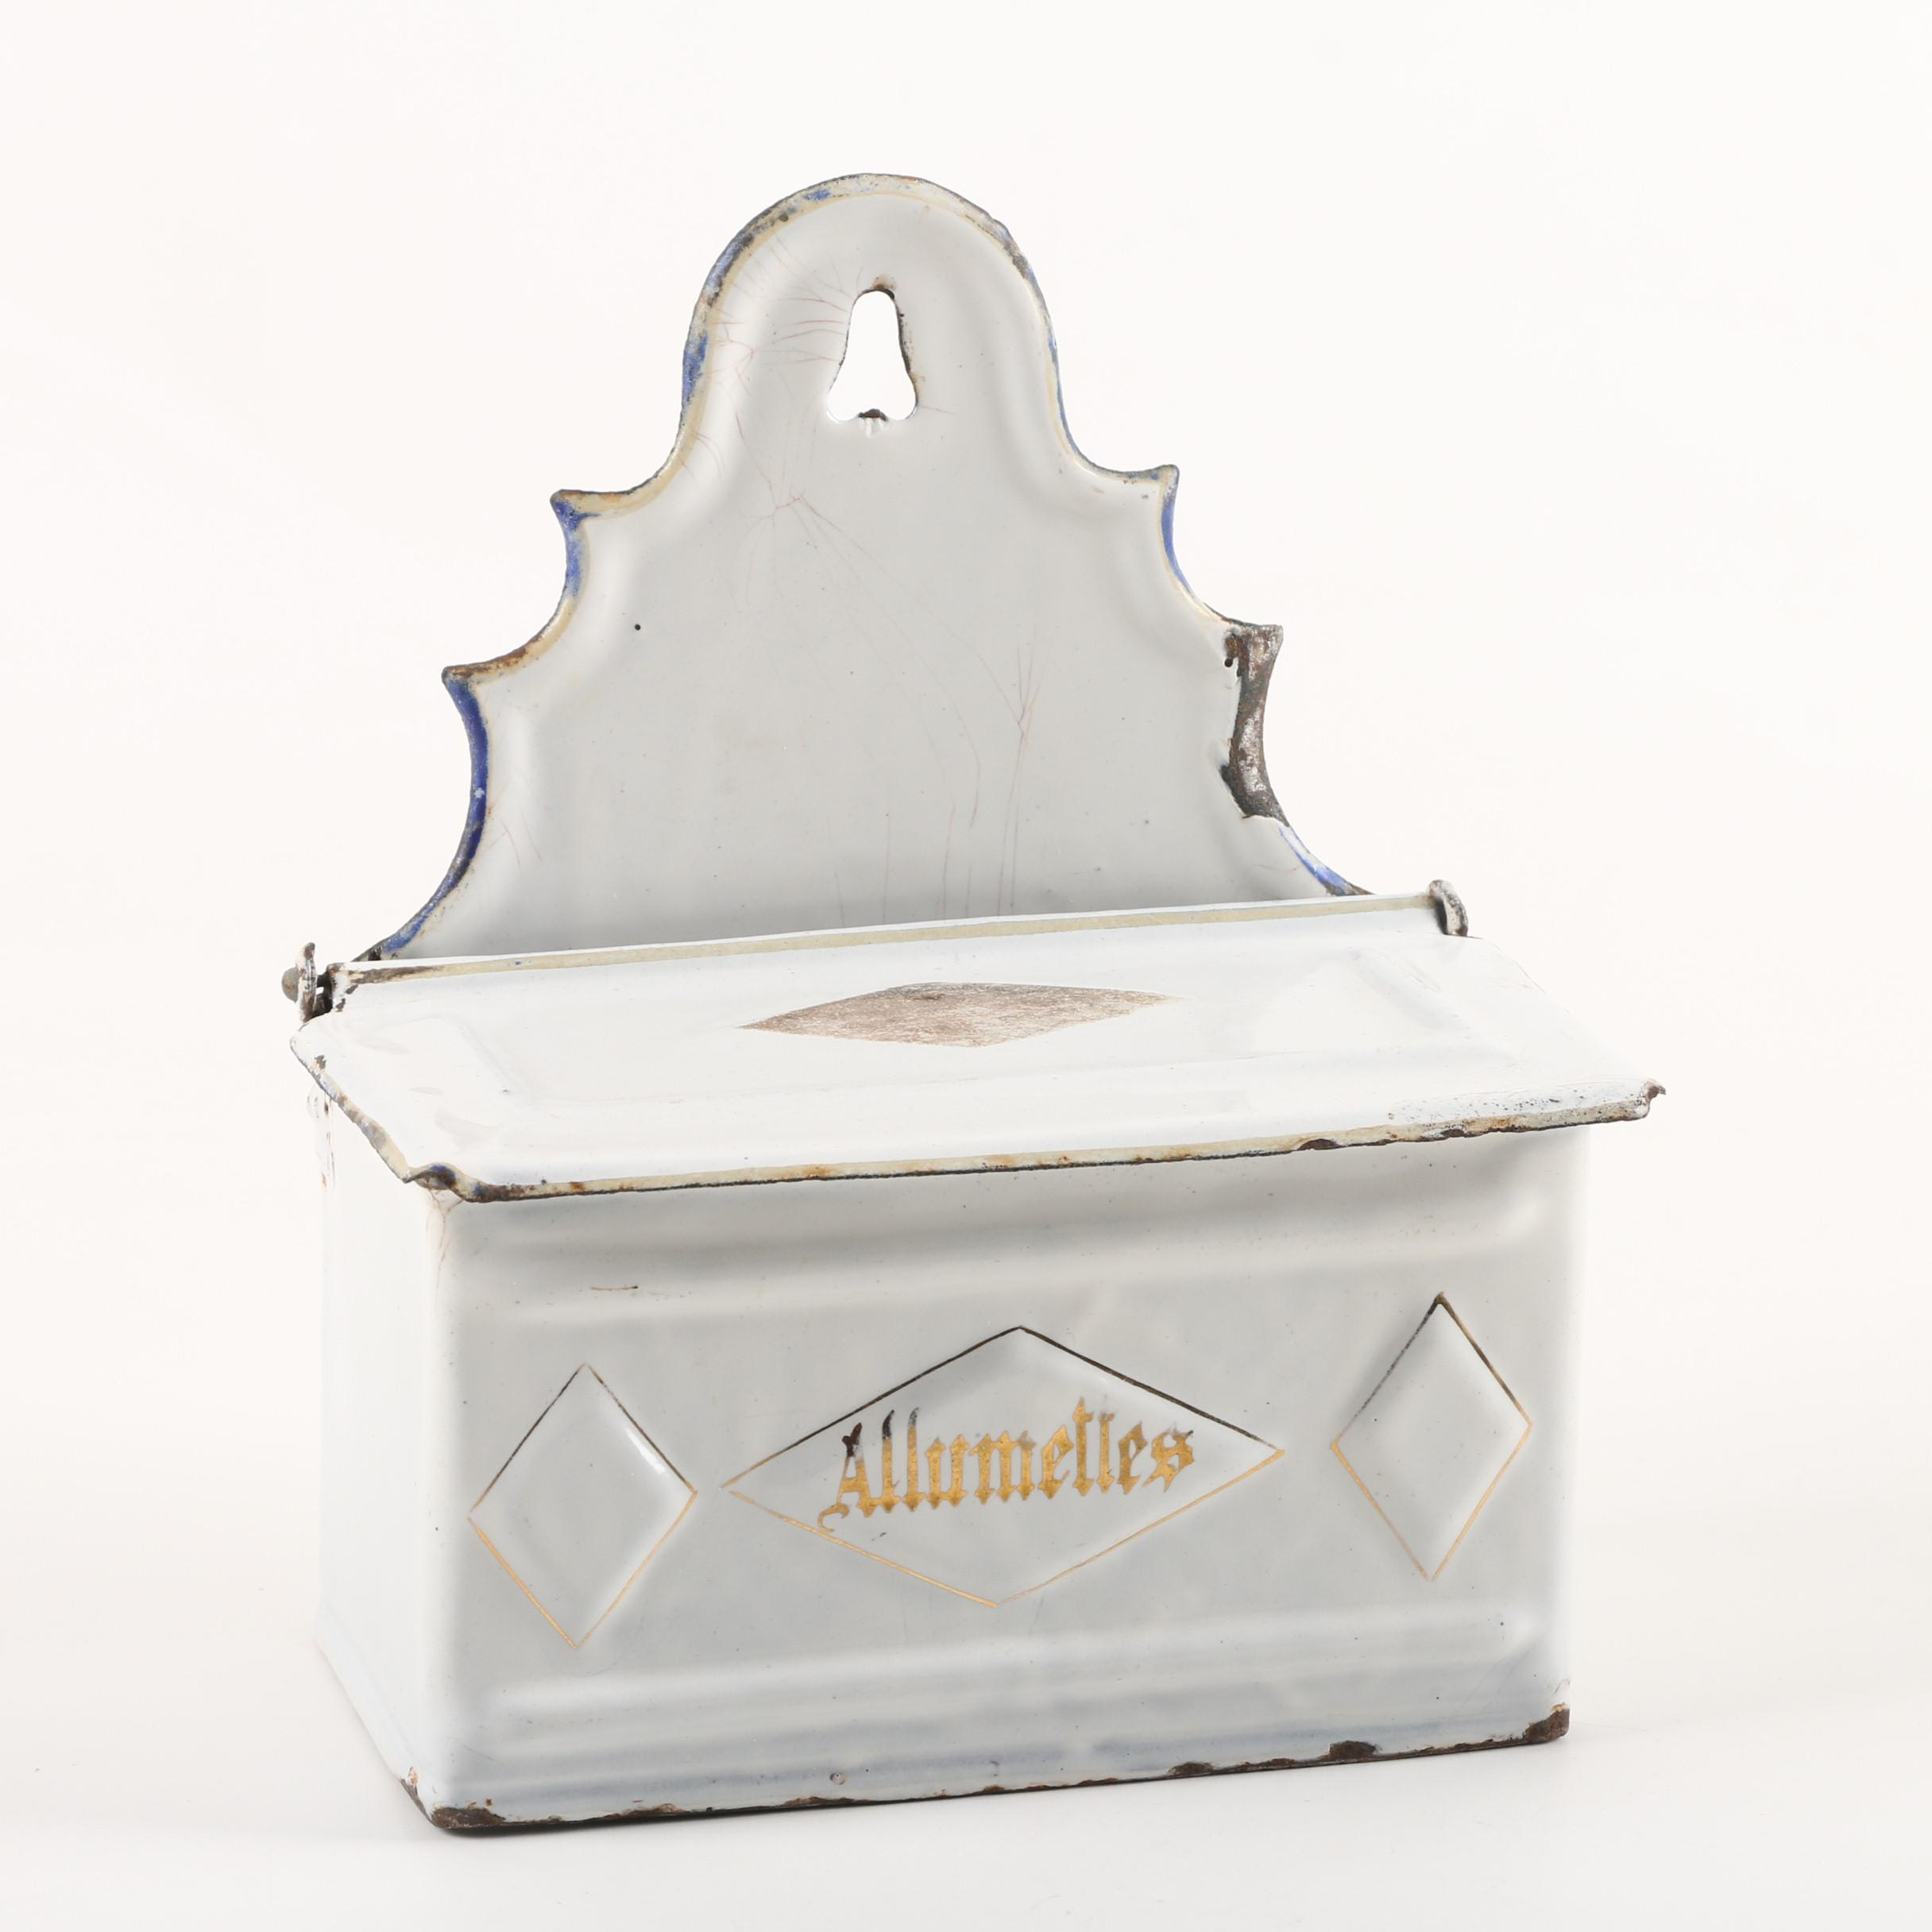 "Vintage ""Allumettes"" French White Enameled Metal Match Box"